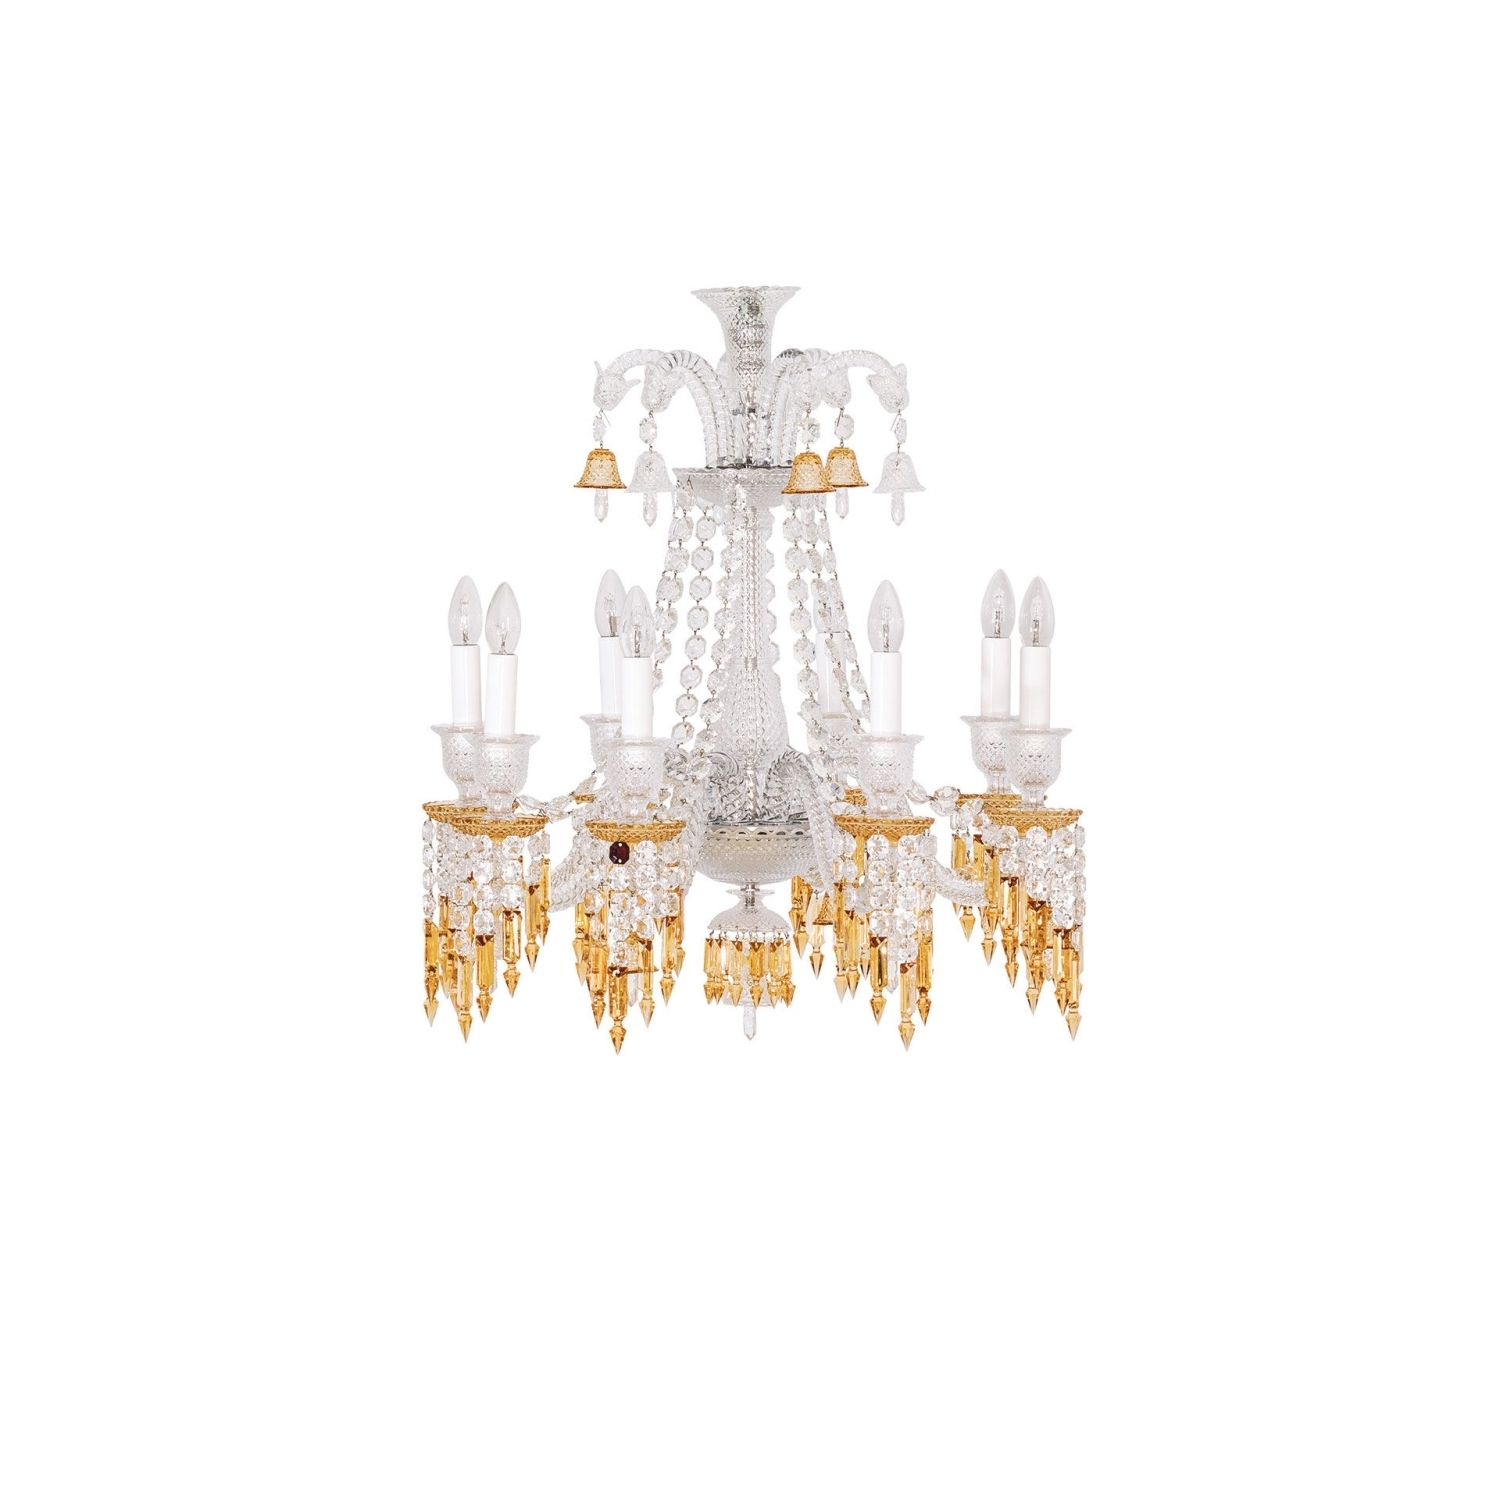 Well Liked Chandelier 8L Baccarat Zenith Charleston 2809404 Regarding Short Chandelier Lights (View 8 of 15)